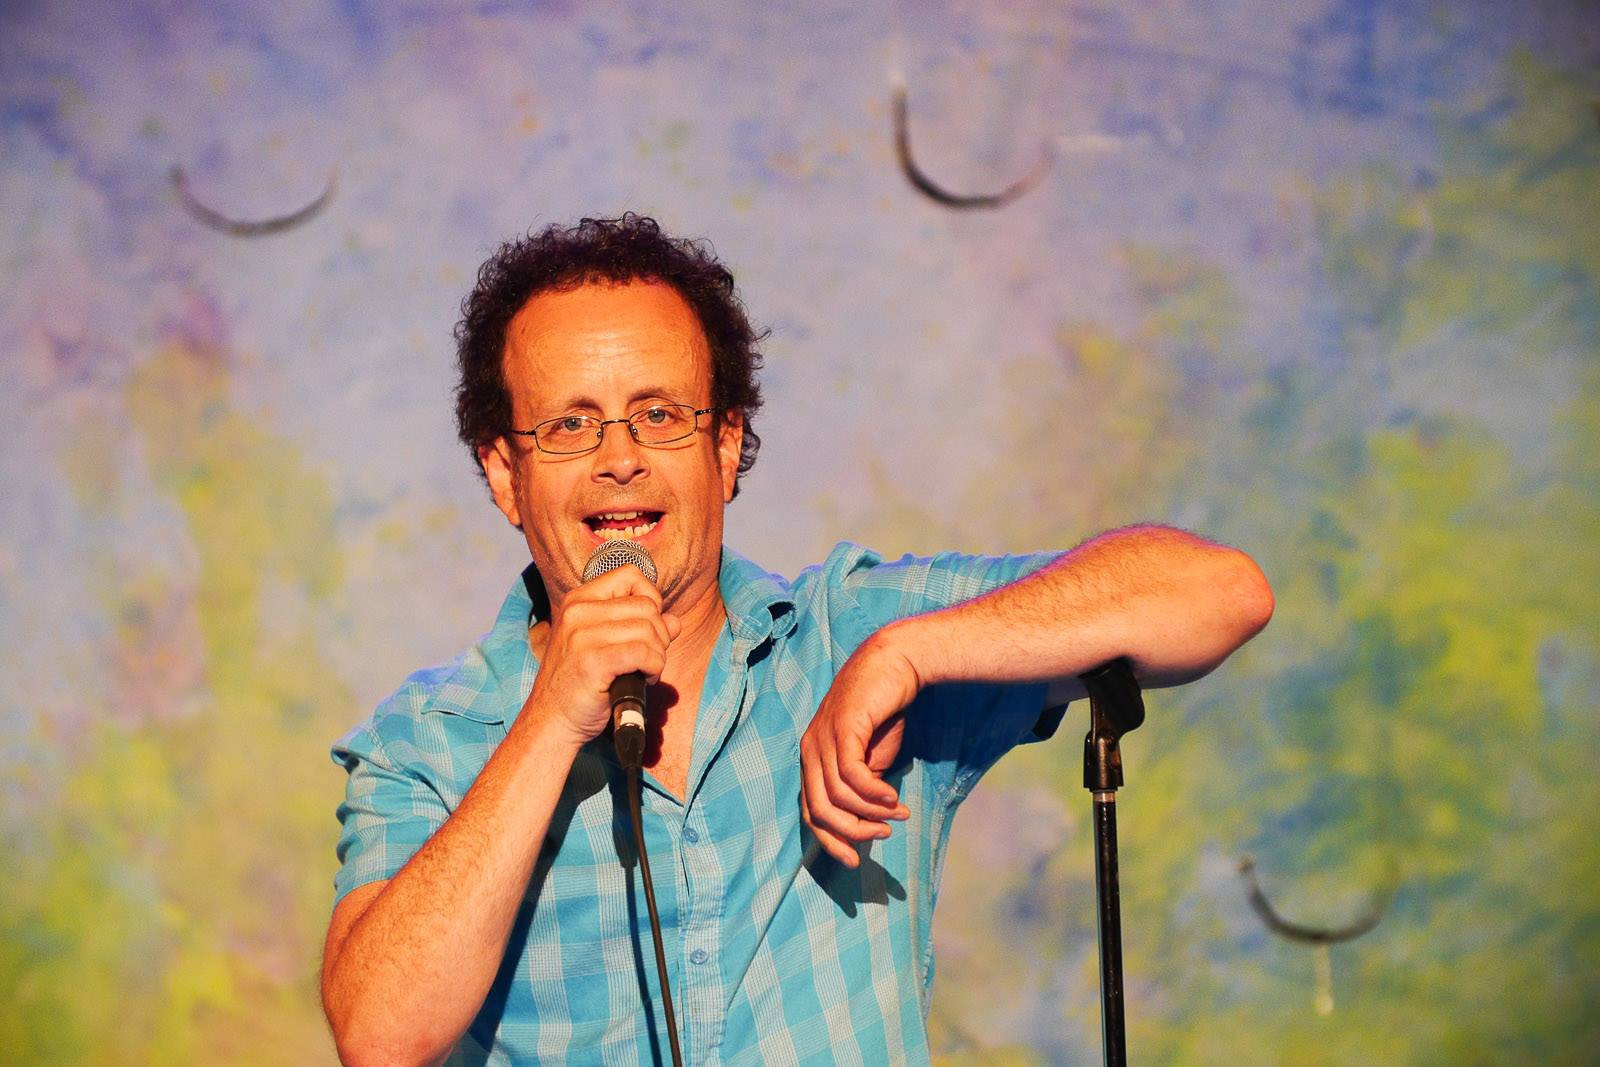 kevin mcdonald winnipeg